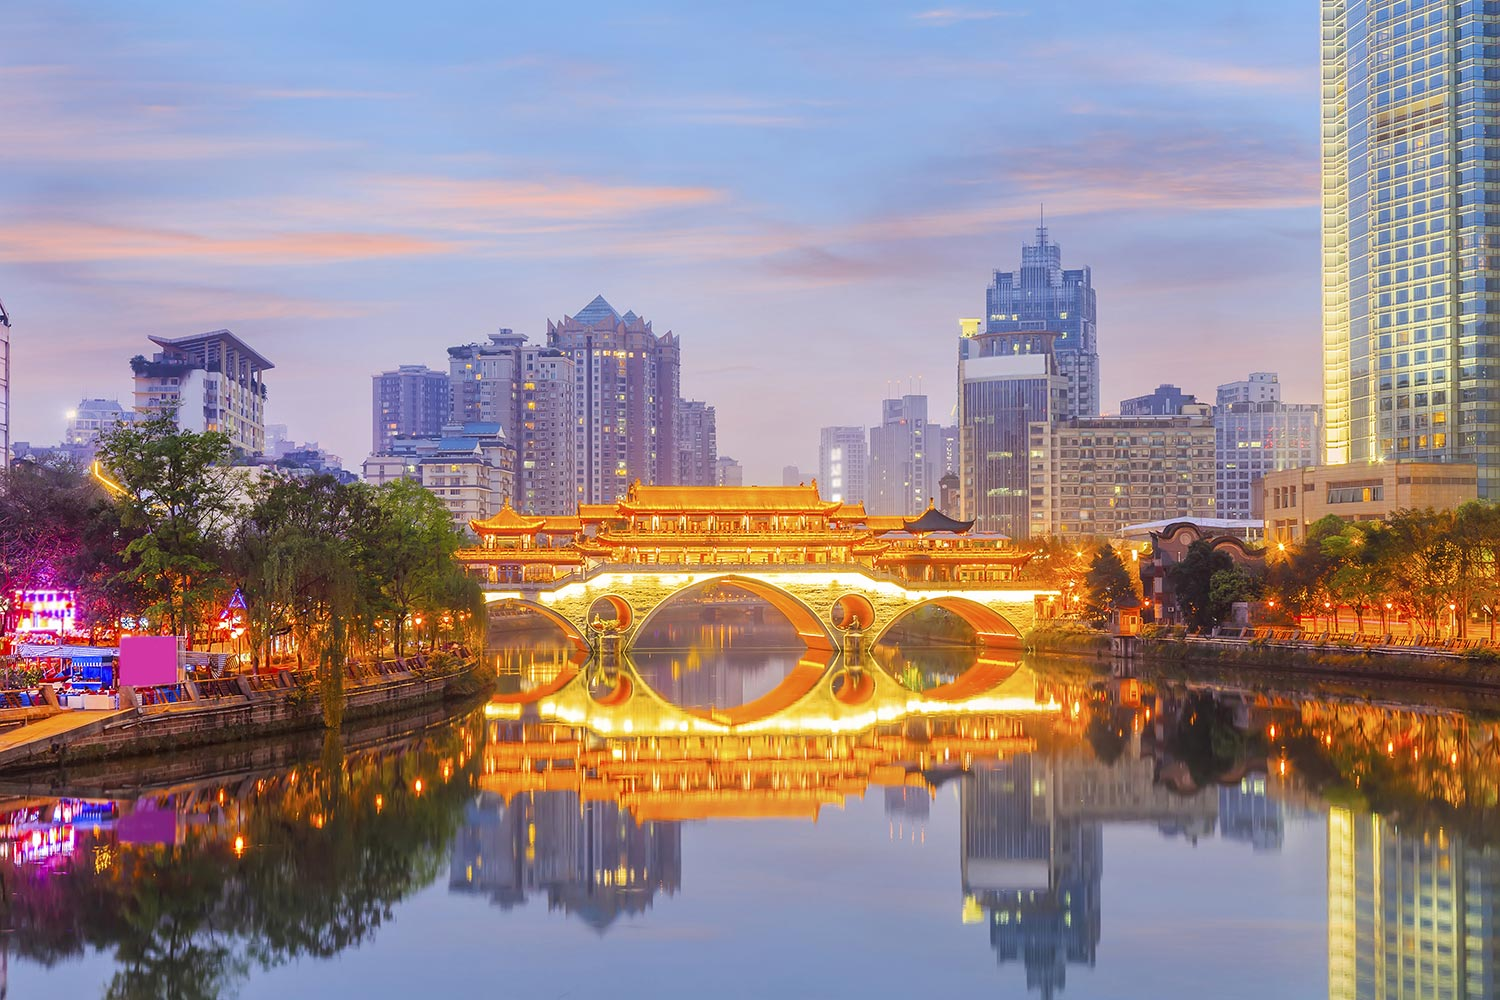 Illuminated bridge surrounded by urban buildings in Chengdu